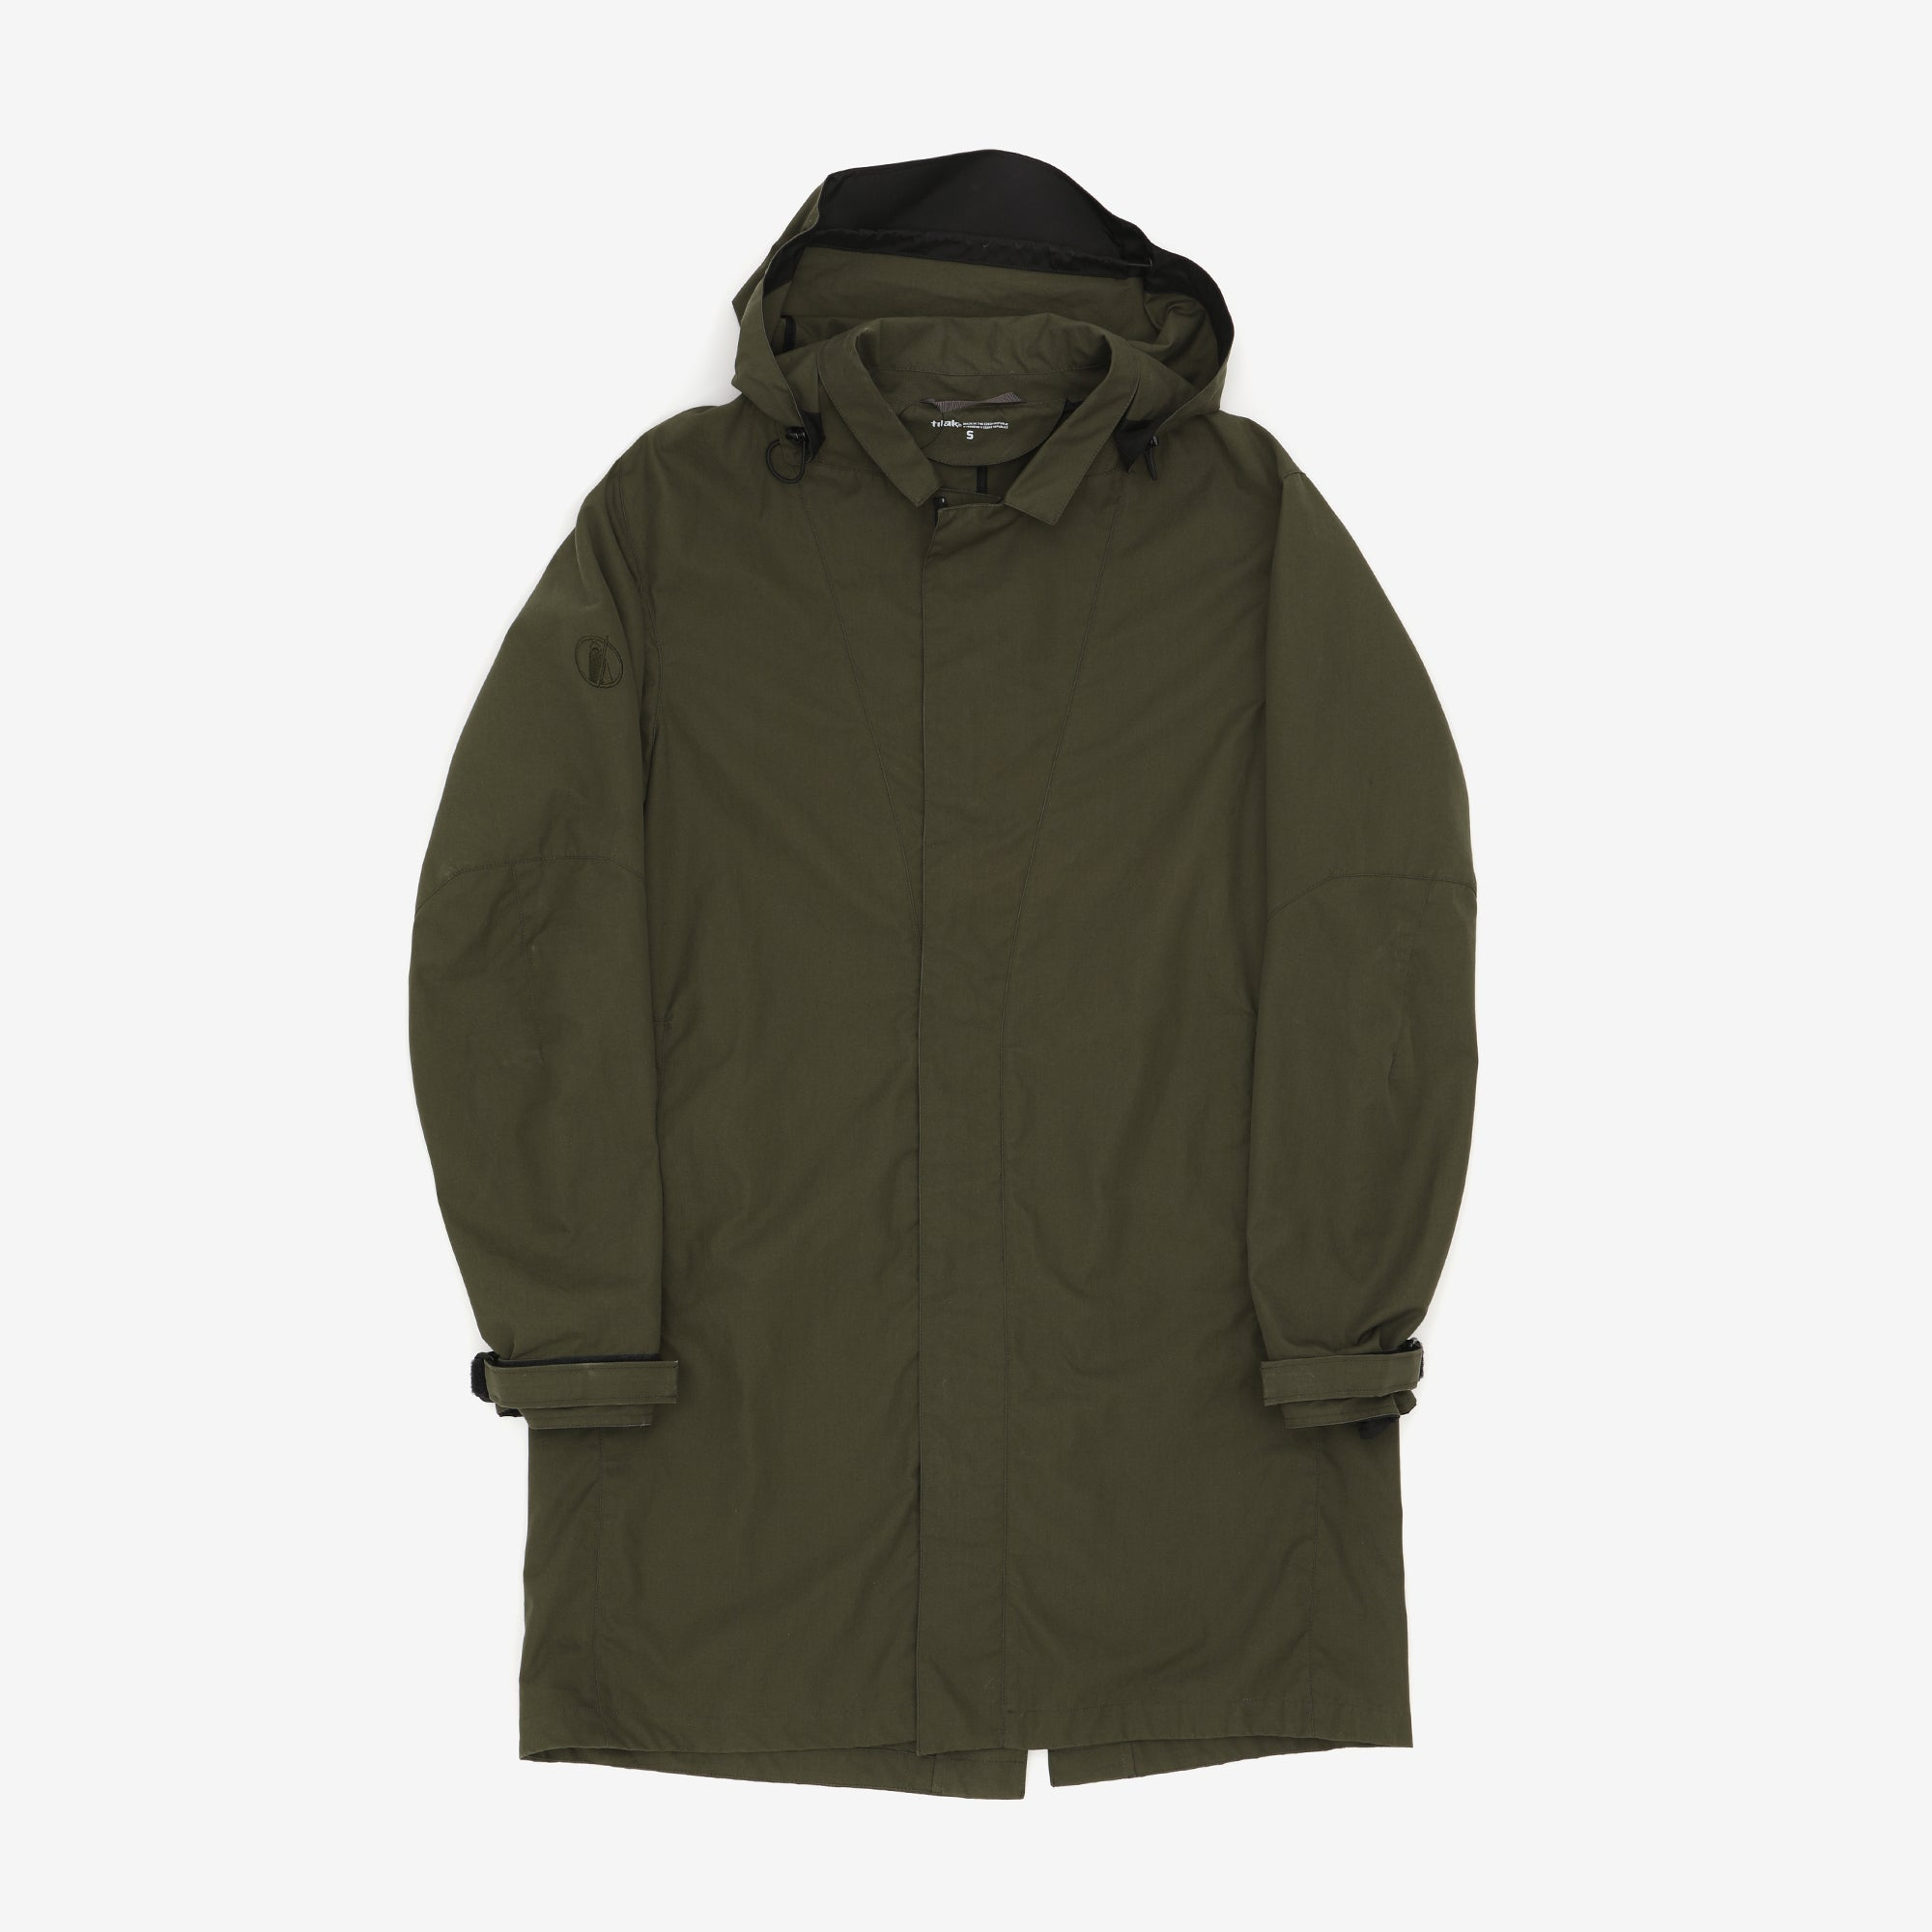 Potnik Knight Ventile Jacket